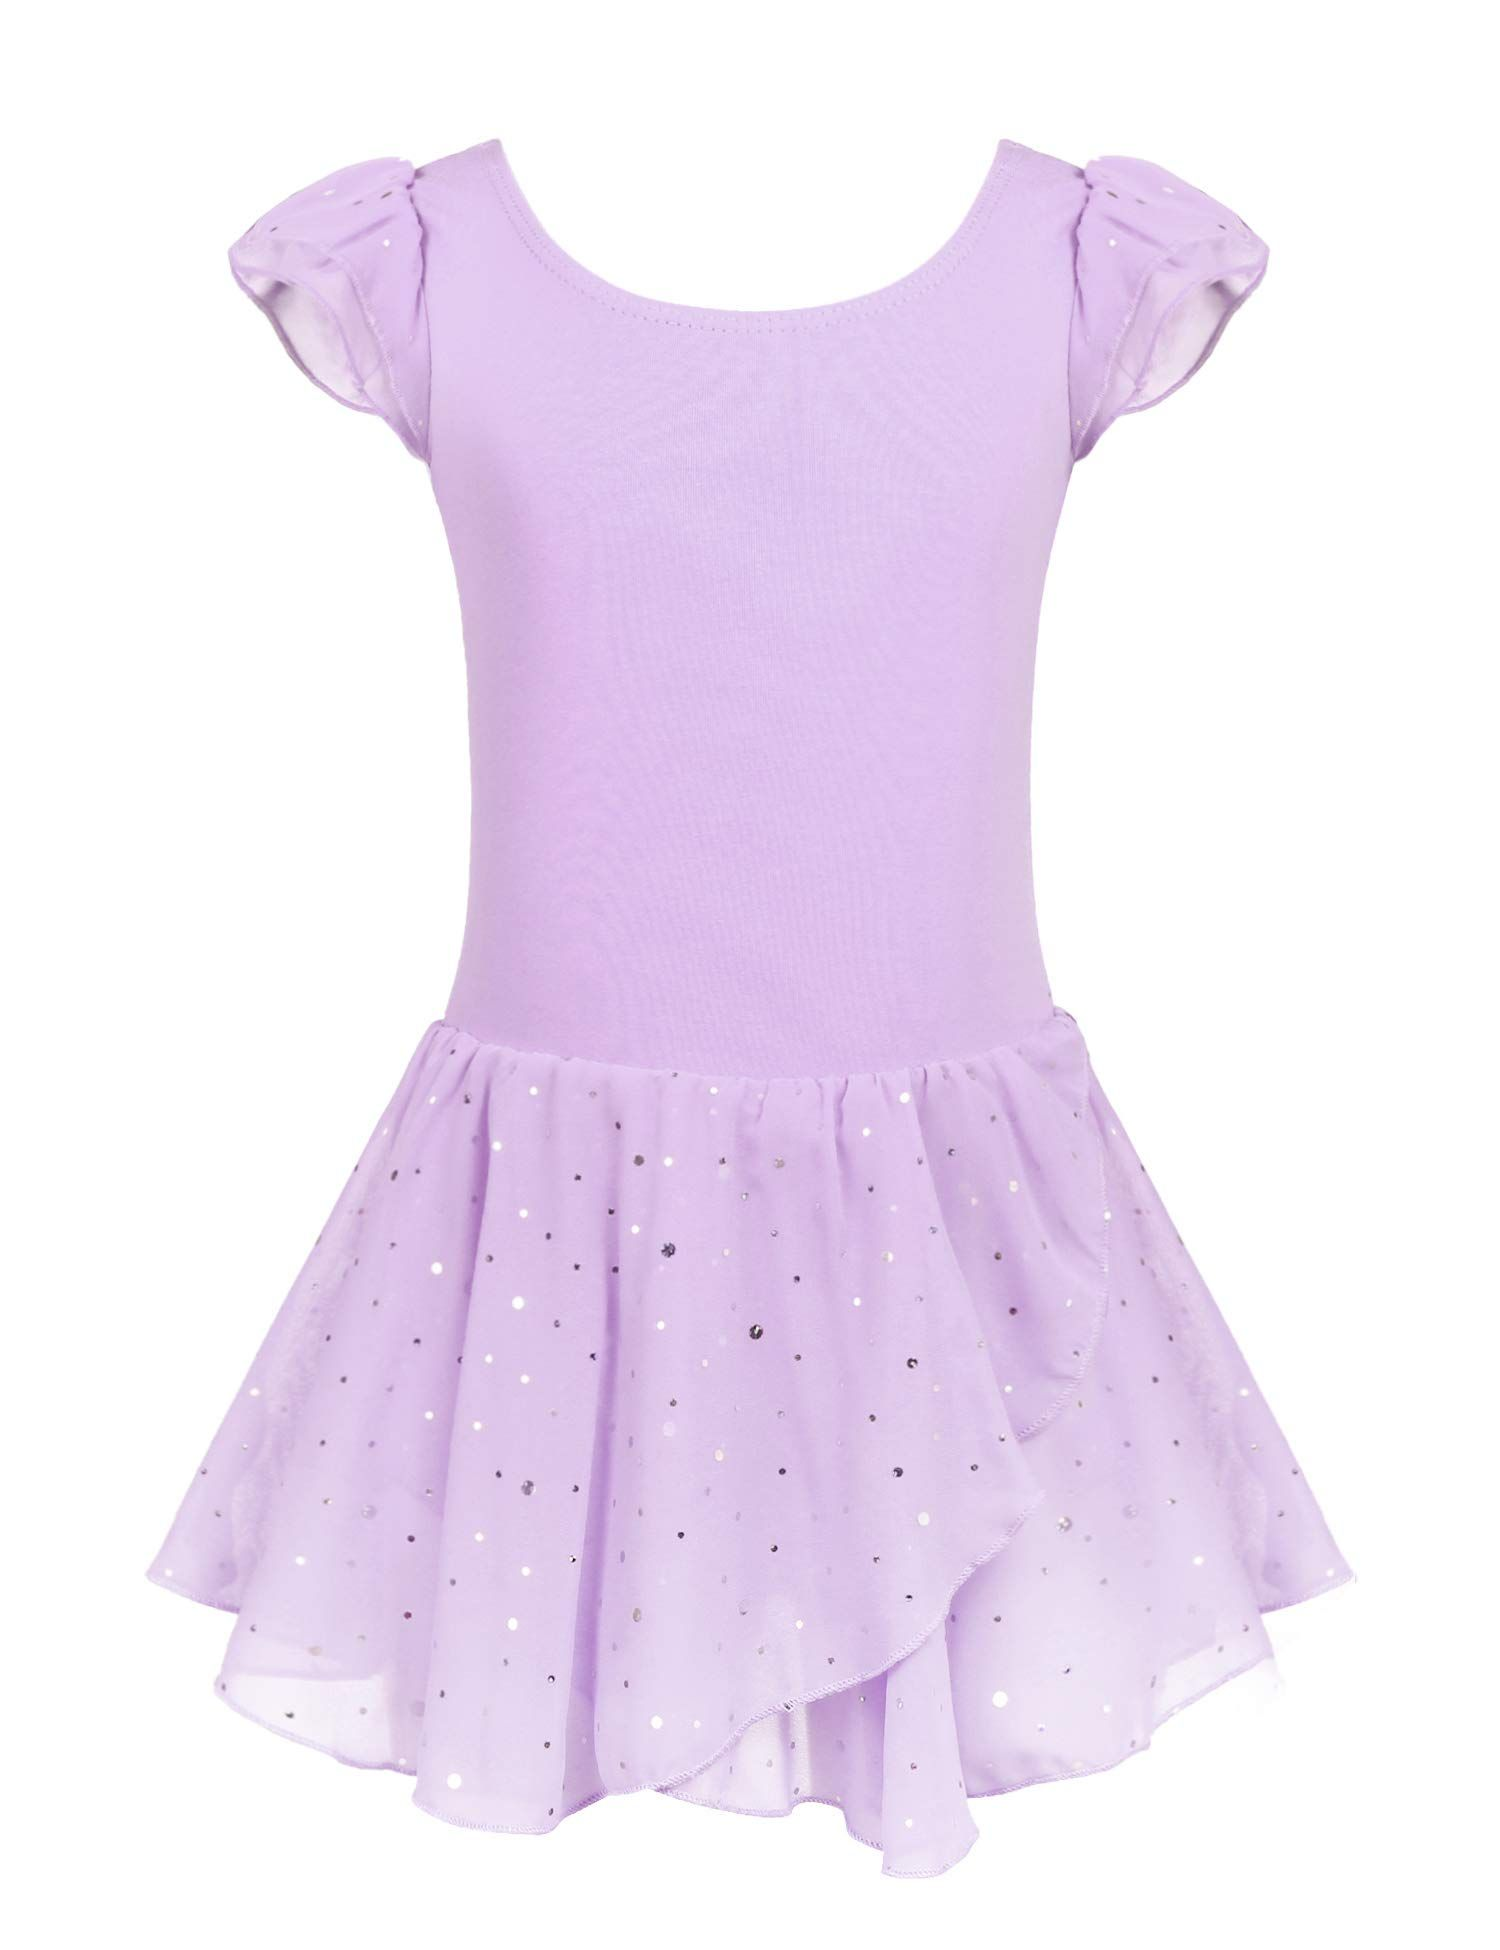 STELLE Short Sleeve Ballet Leotard with Dance Skirt and Dance Tight Combo